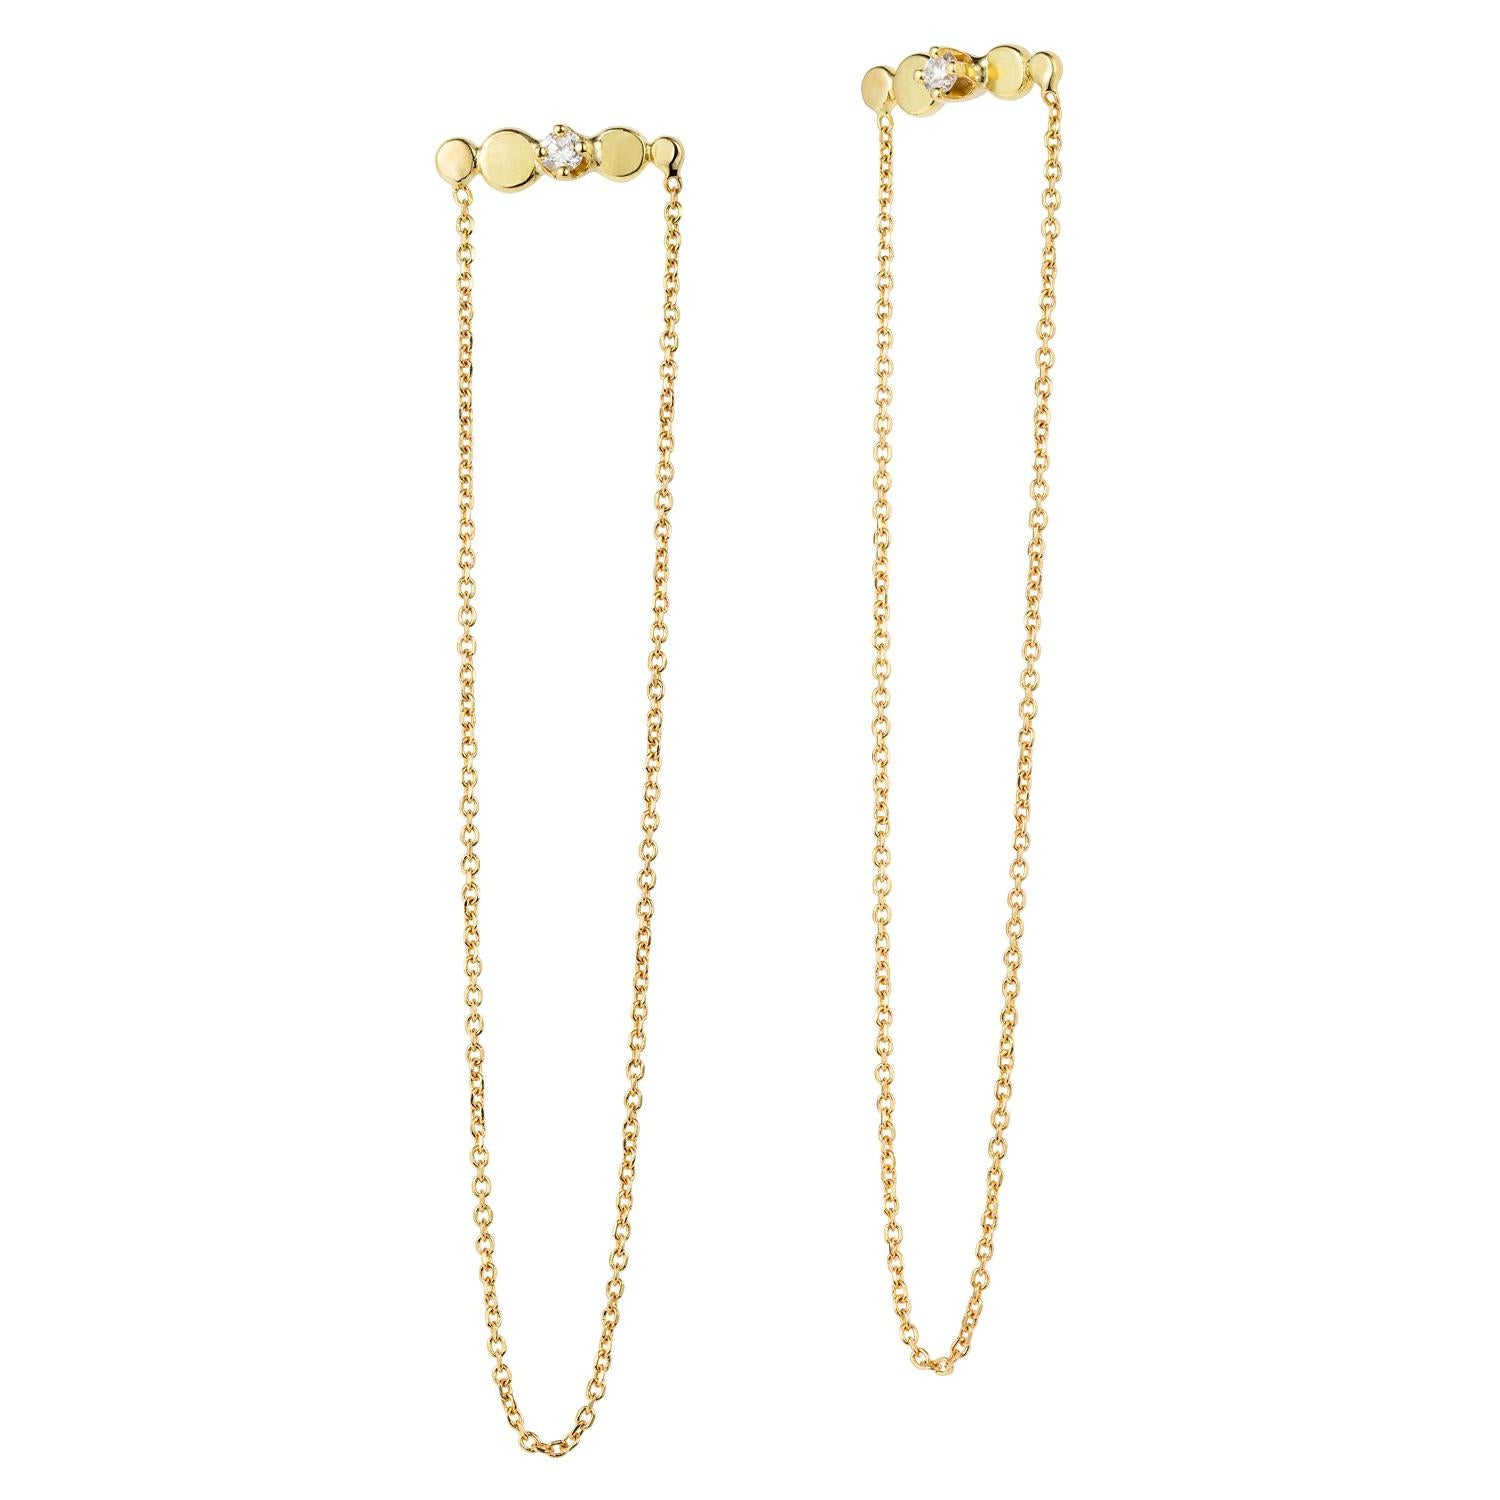 06530171f Sweet Pea Bits and Bobs 18k Yellow Gold Bar Stud and Chain Diamond Earrings  For Sale at 1stdibs